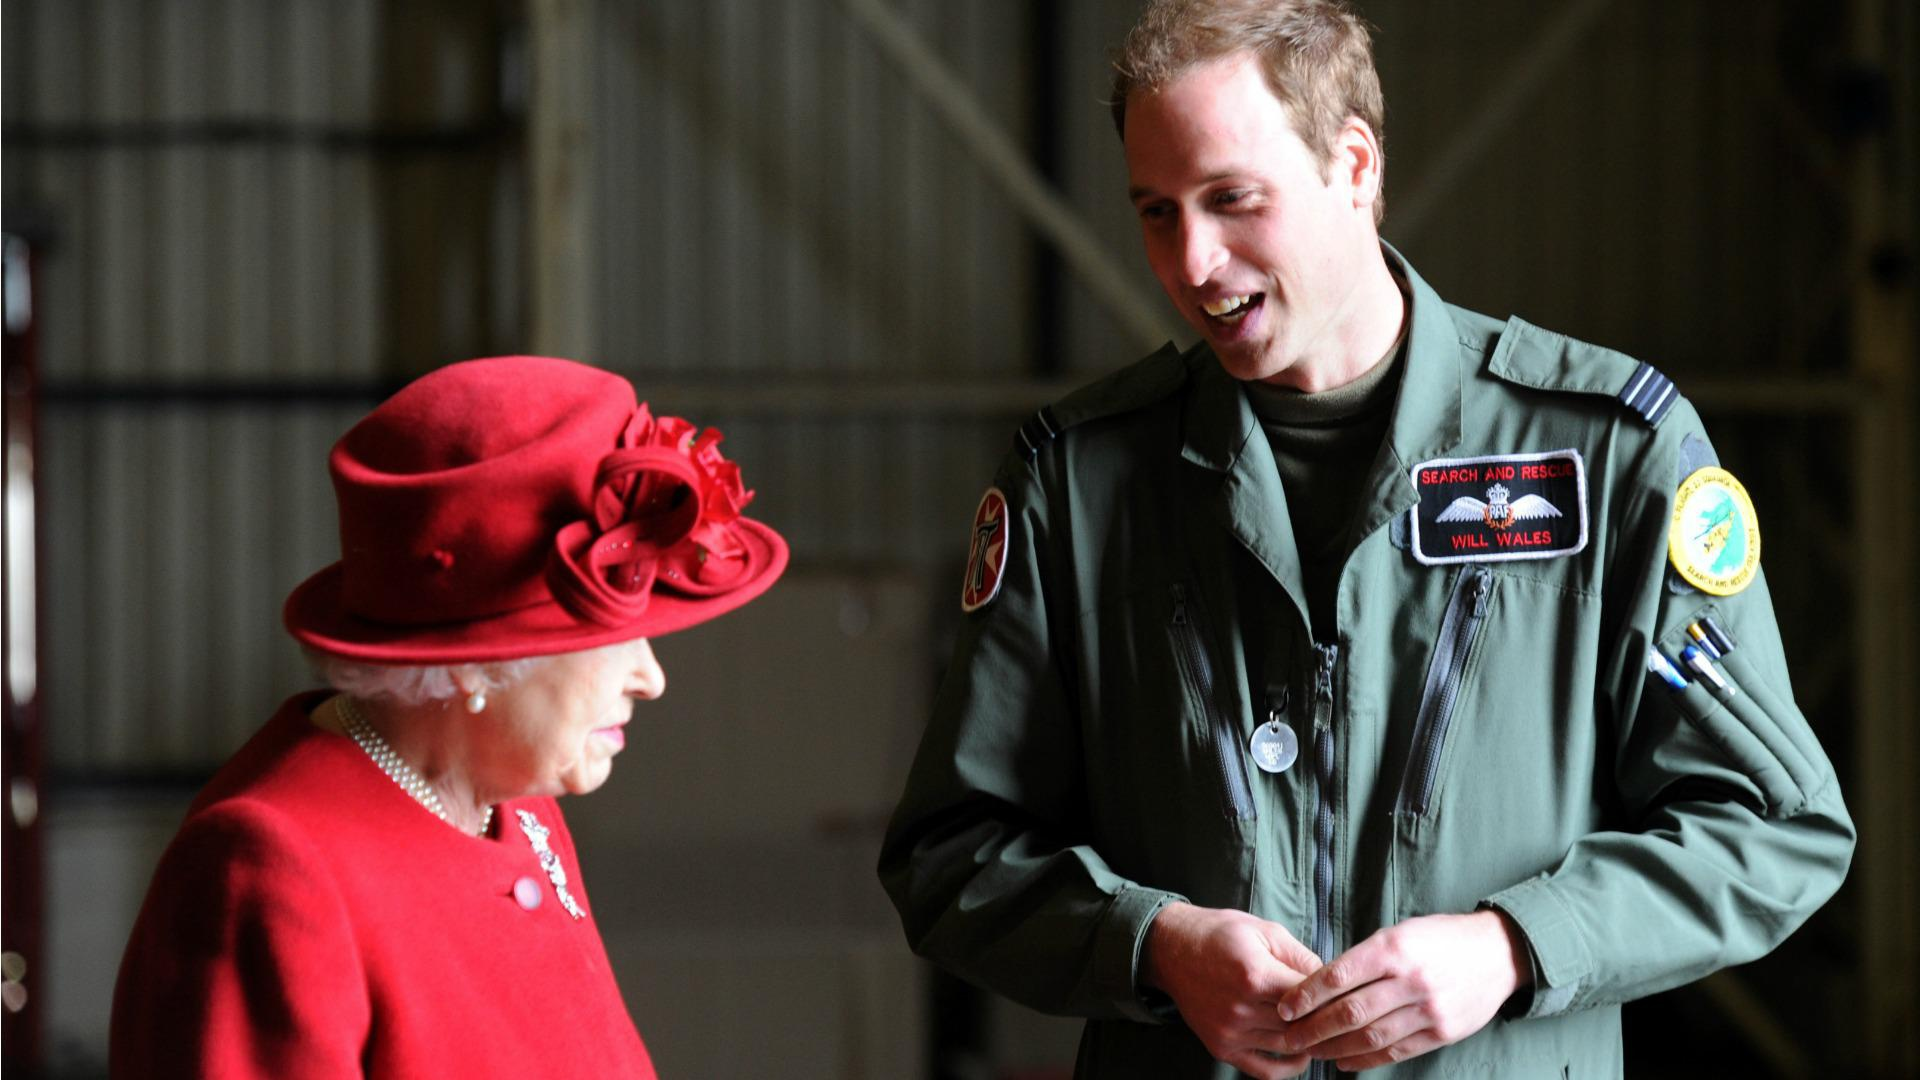 Prince William takes new job as medevac helicopter pilot